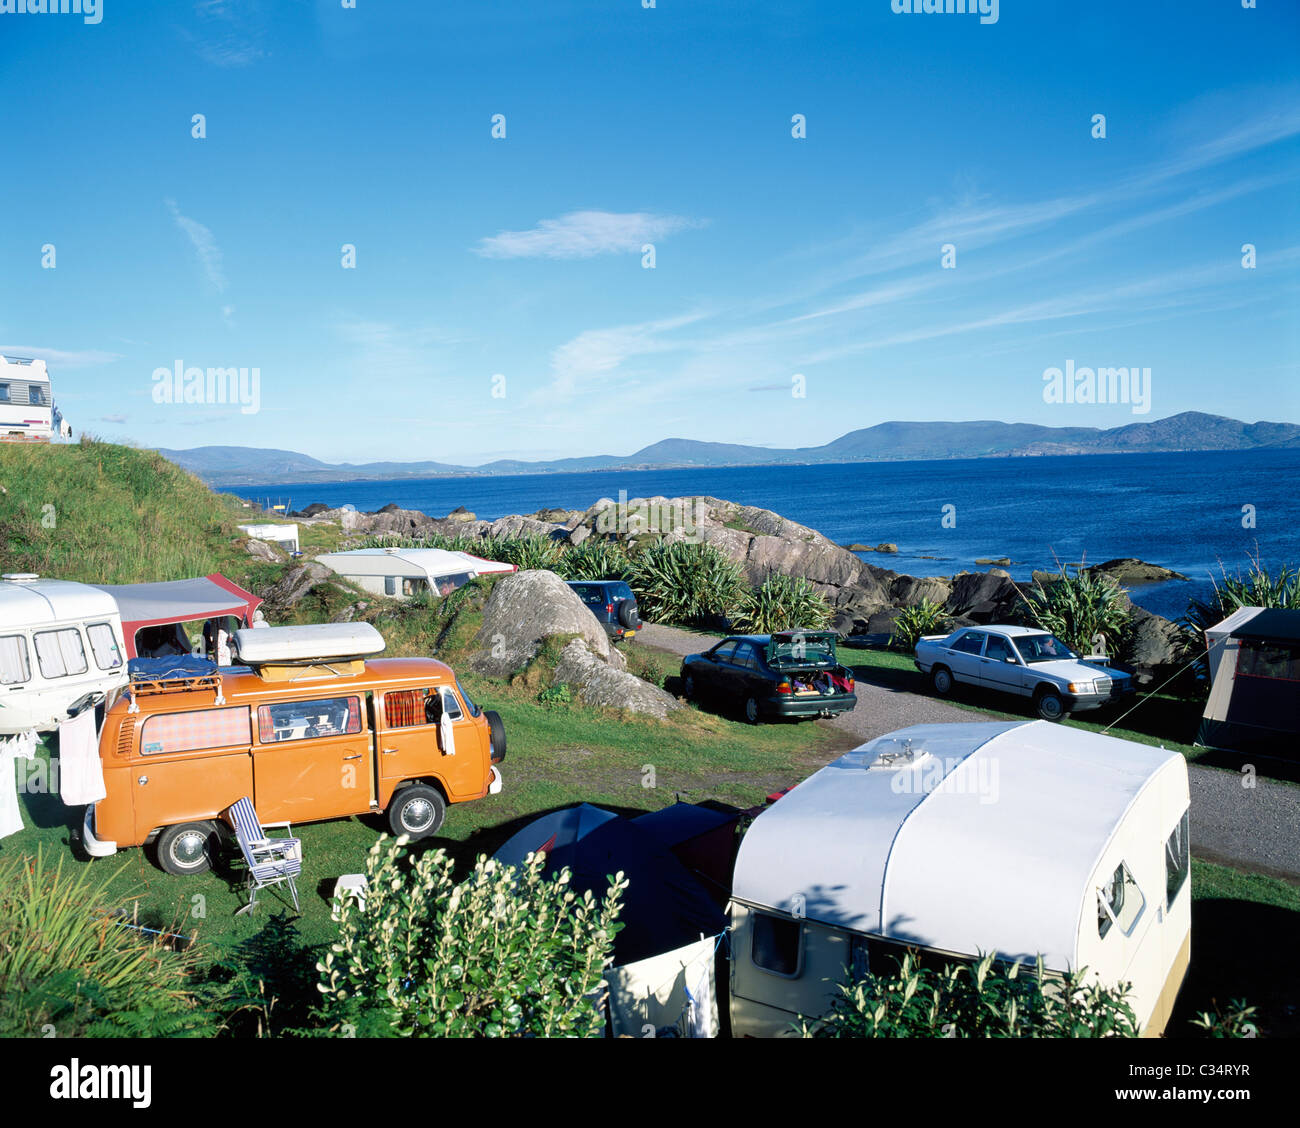 Charles Camping - Home Page